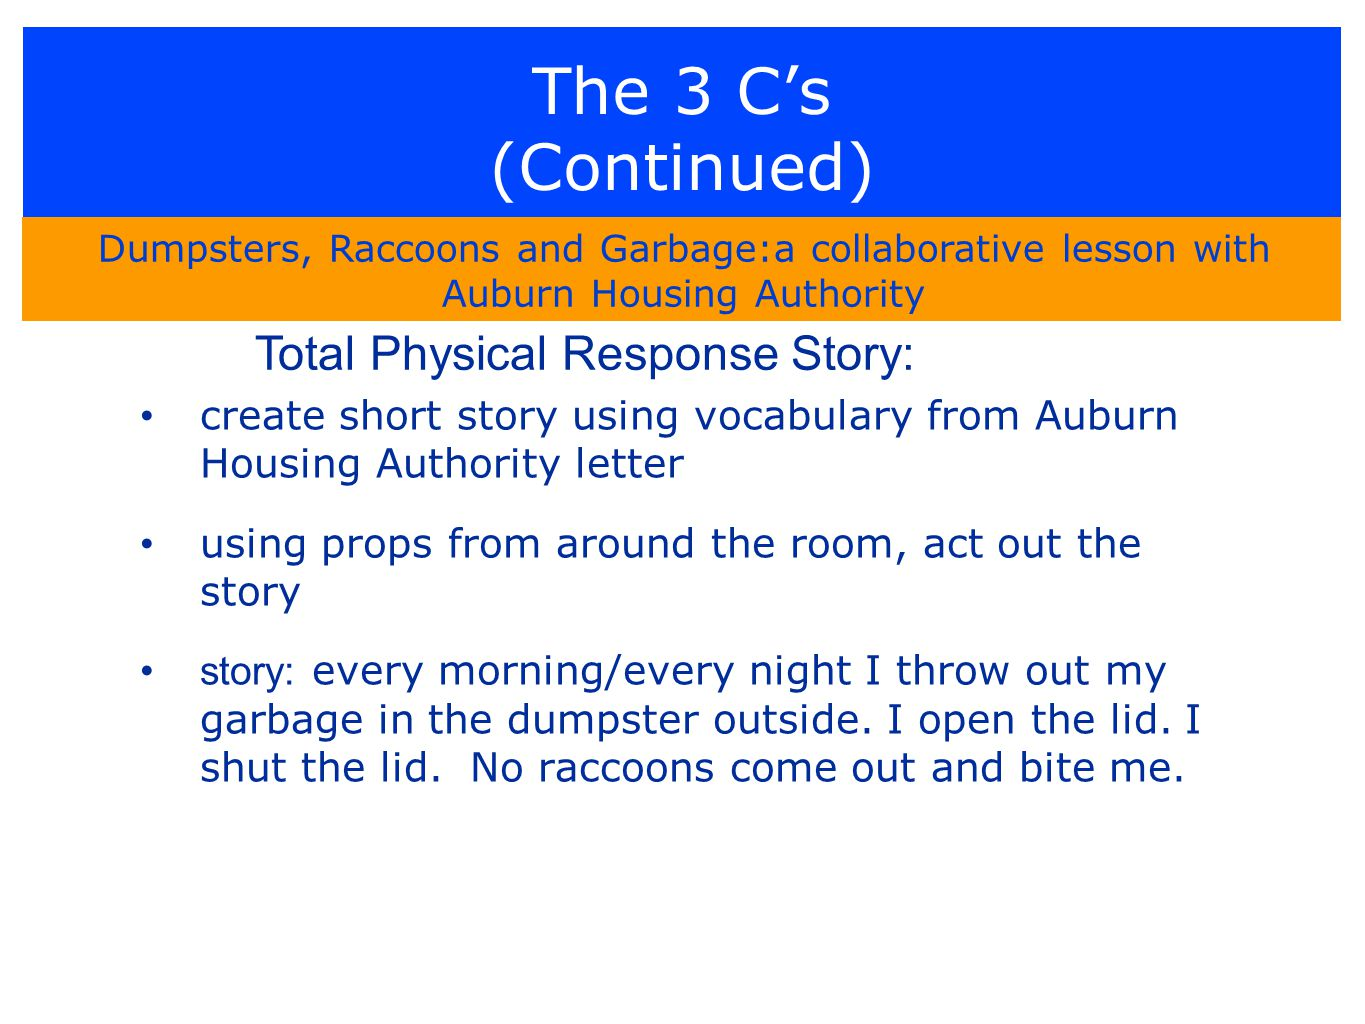 The 3 C's (Continued) create short story using vocabulary from Auburn Housing Authority letter using props from around the room, act out the story story: every morning/every night I throw out my garbage in the dumpster outside.